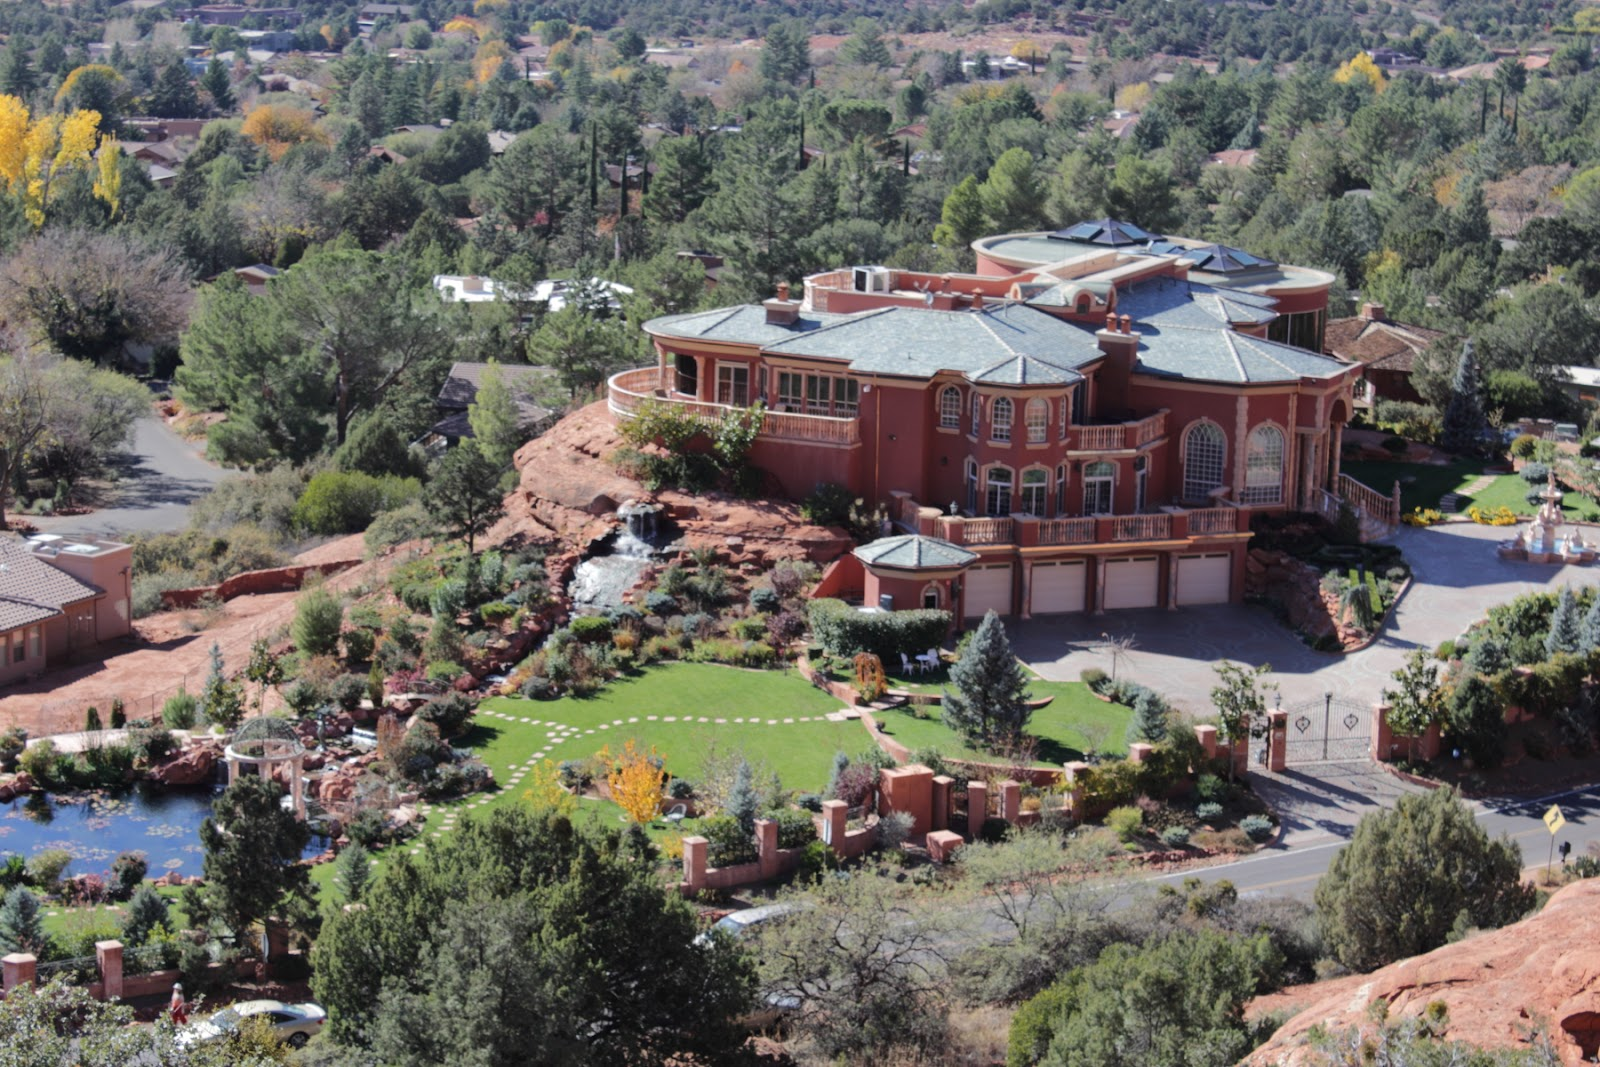 Chapel Of The Holy Cross - Sedona  That huge mansion is owned by one Ioan Cosmescu, founder of a medical devices company. See the inside of the mansion here - http://s304.photobucket.com/albums/nn165/notthebarbie74/Sedona/Romanian%20Mansion%20in%20Sedona/